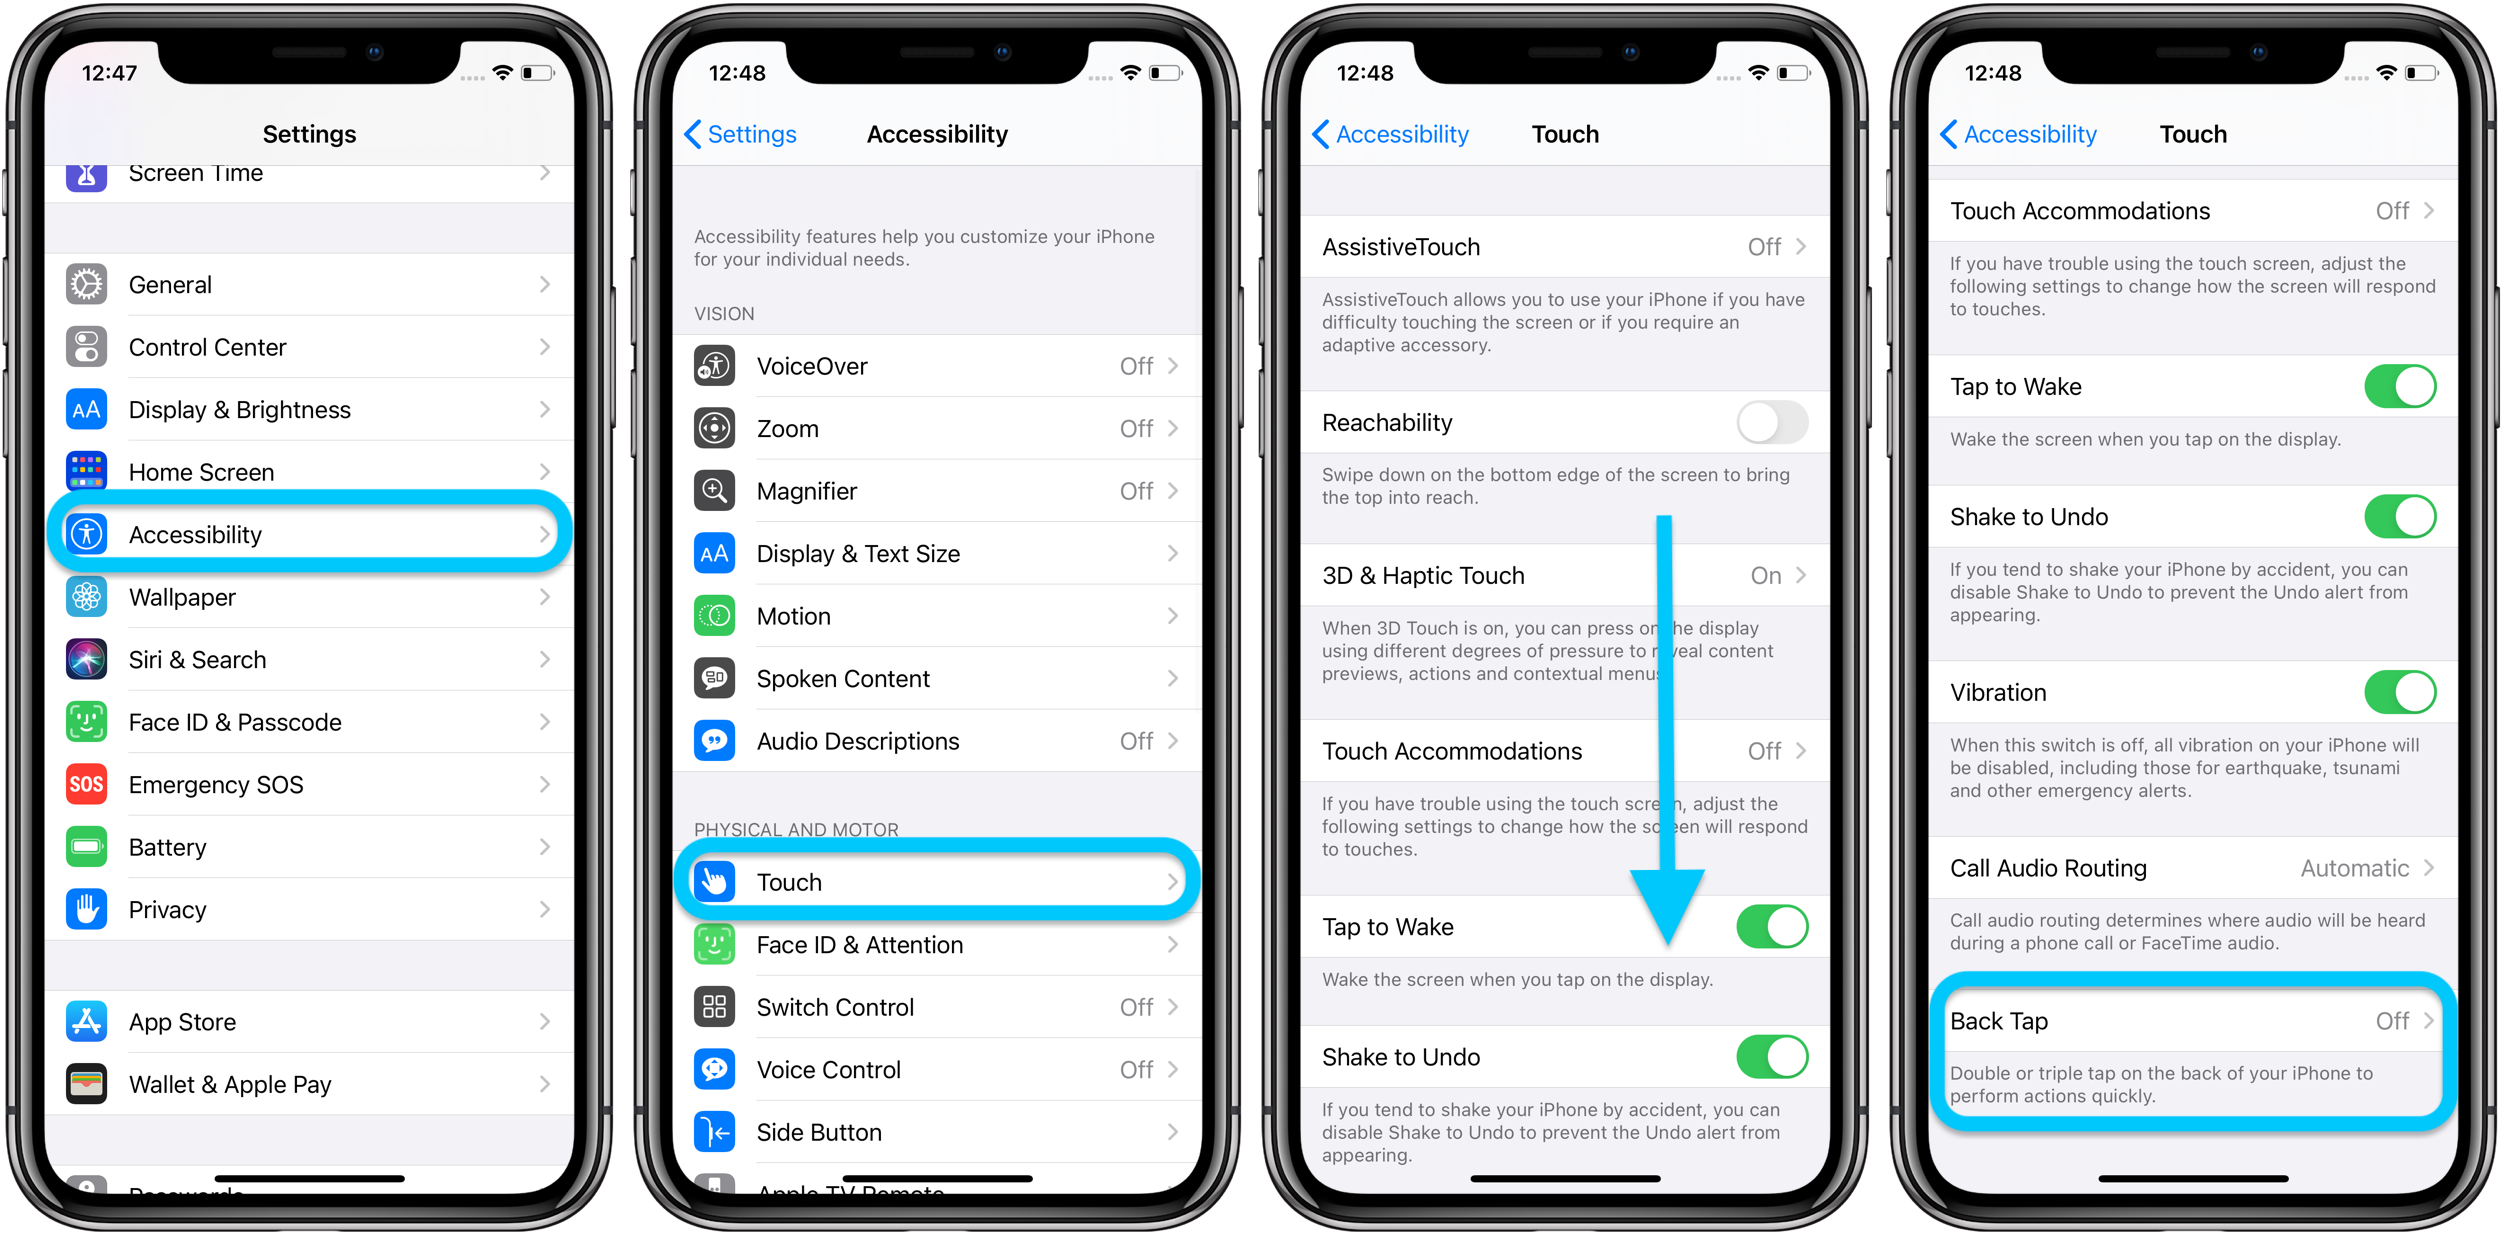 How to use iPhone Back Tap custom controls in iOS 14 - 9to5Mac